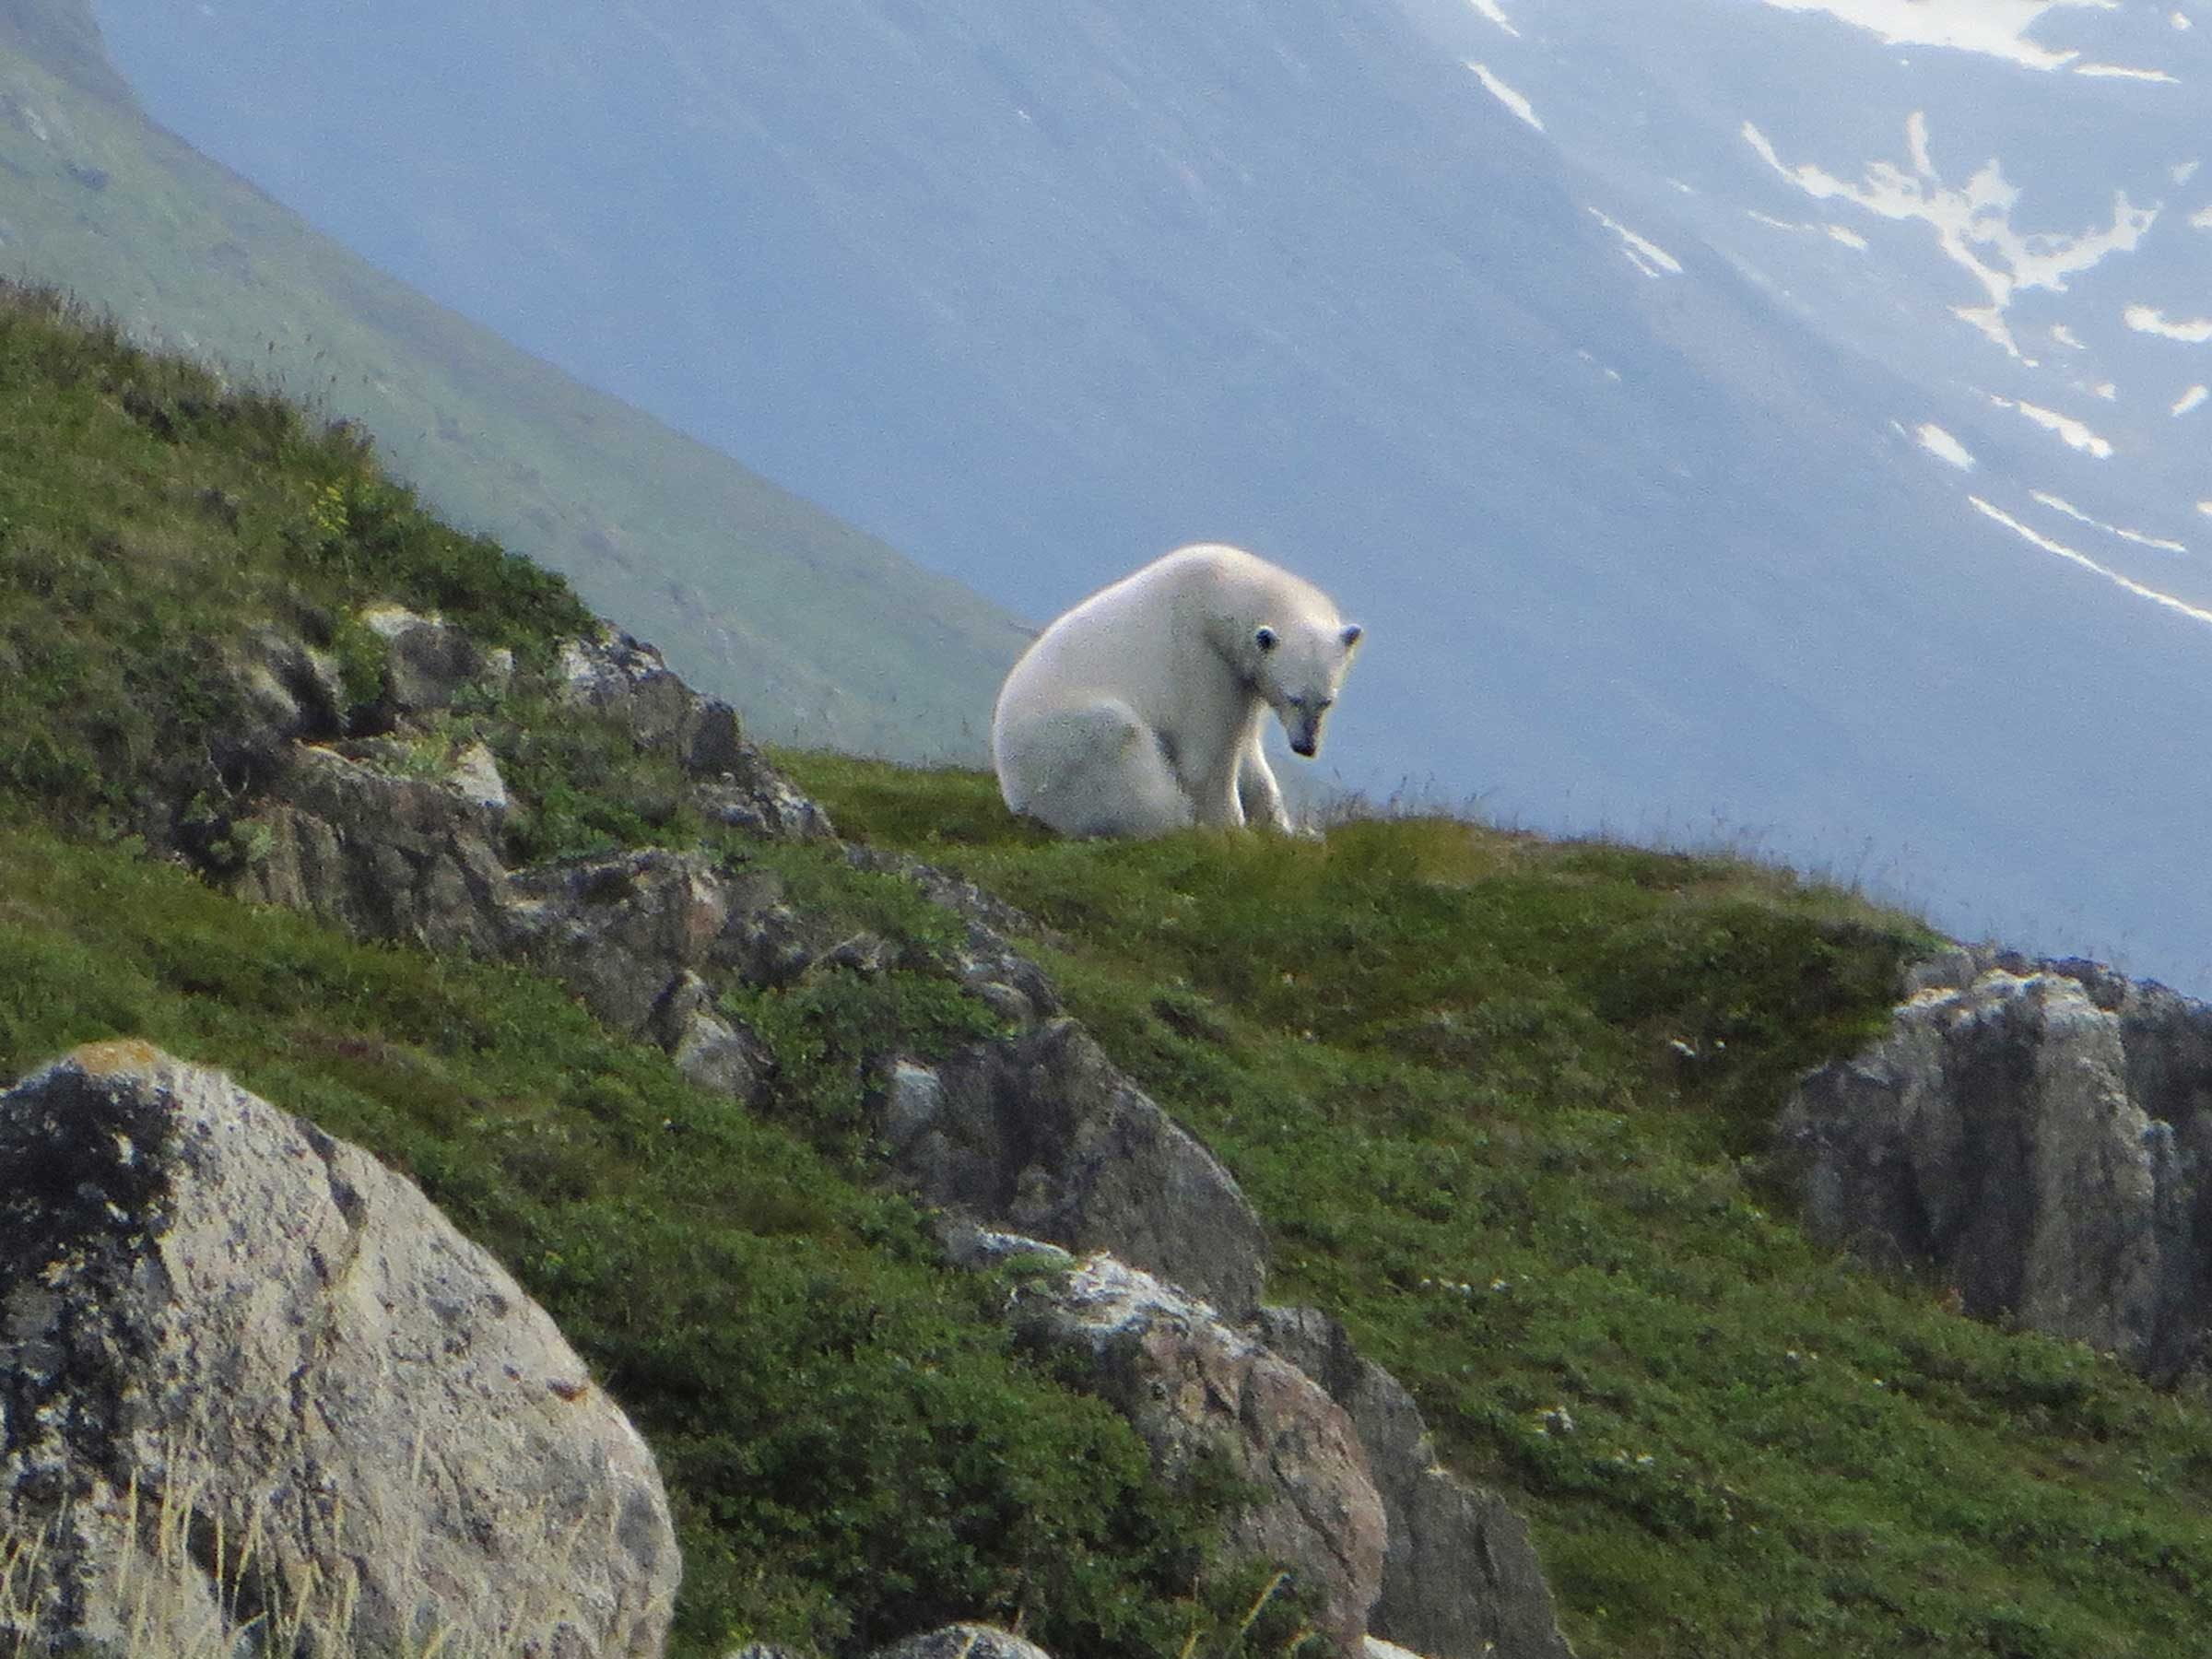 How One Man Escaped A Polar Bear Attack Readers Digest - This bear is rolling down a hill is having the time of his life